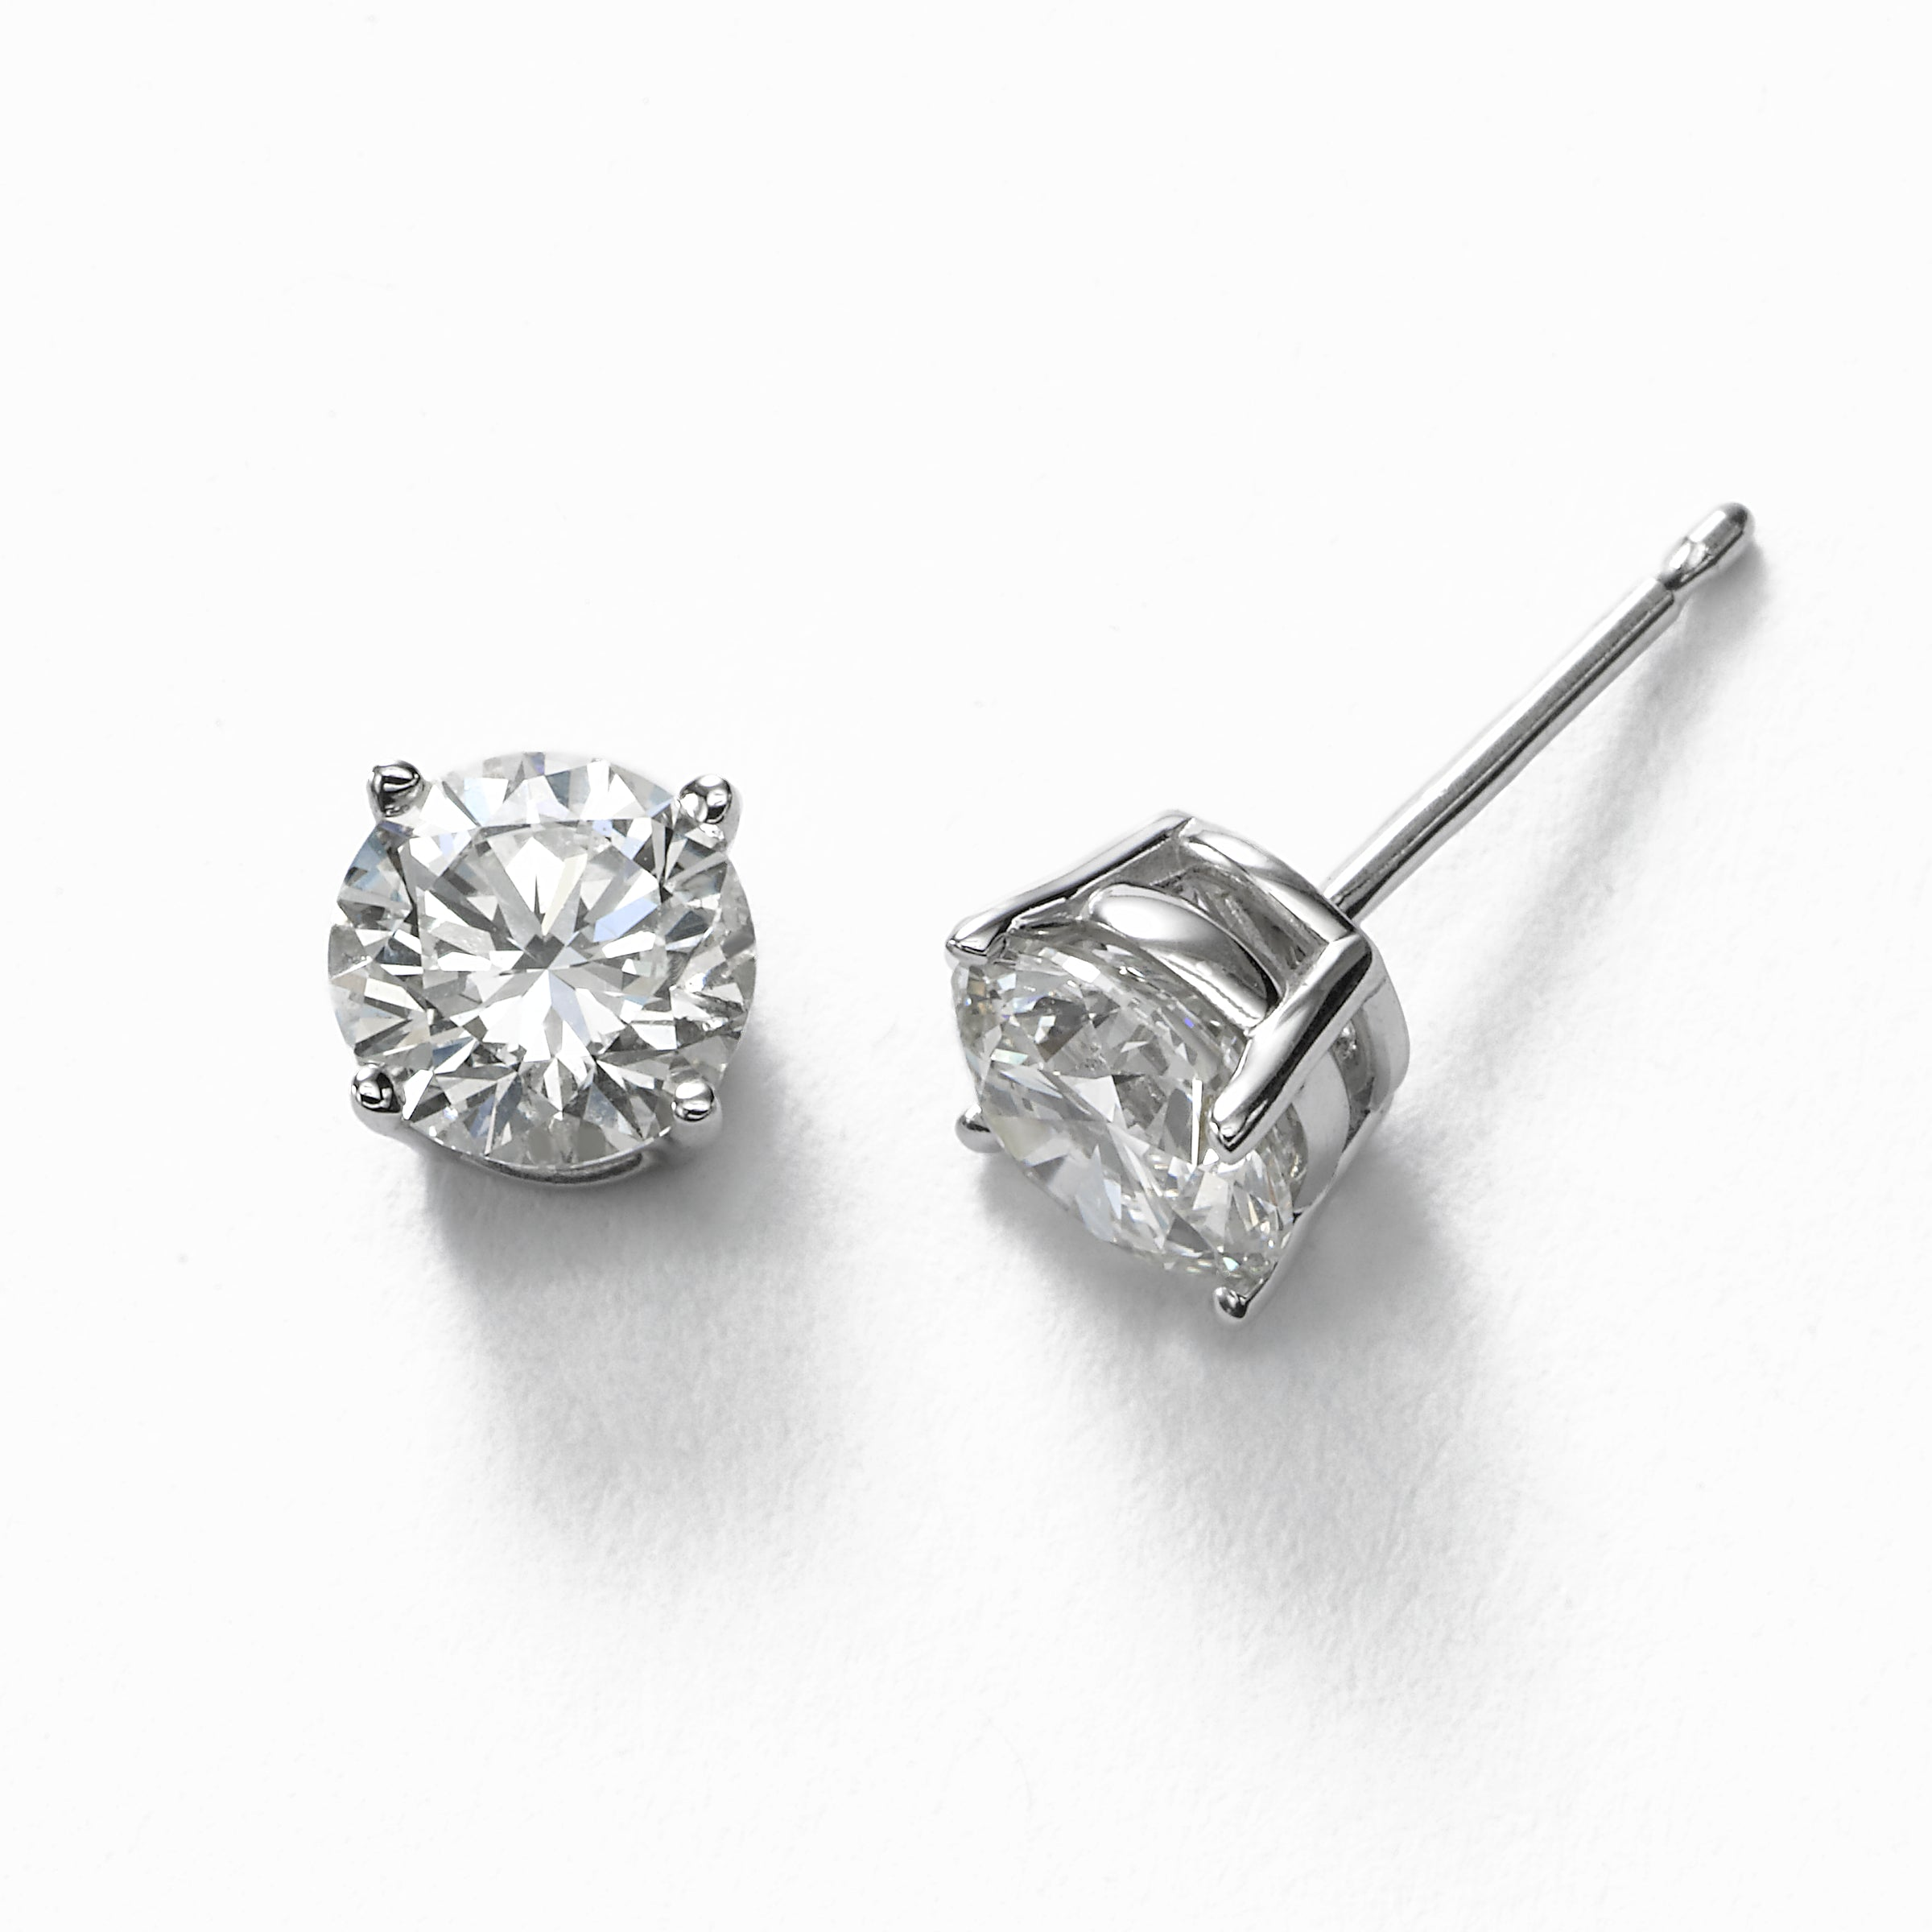 Diamond Stud Earrings, 1.50 Carats total, I/J/K-VS/SI, 14K White Gold